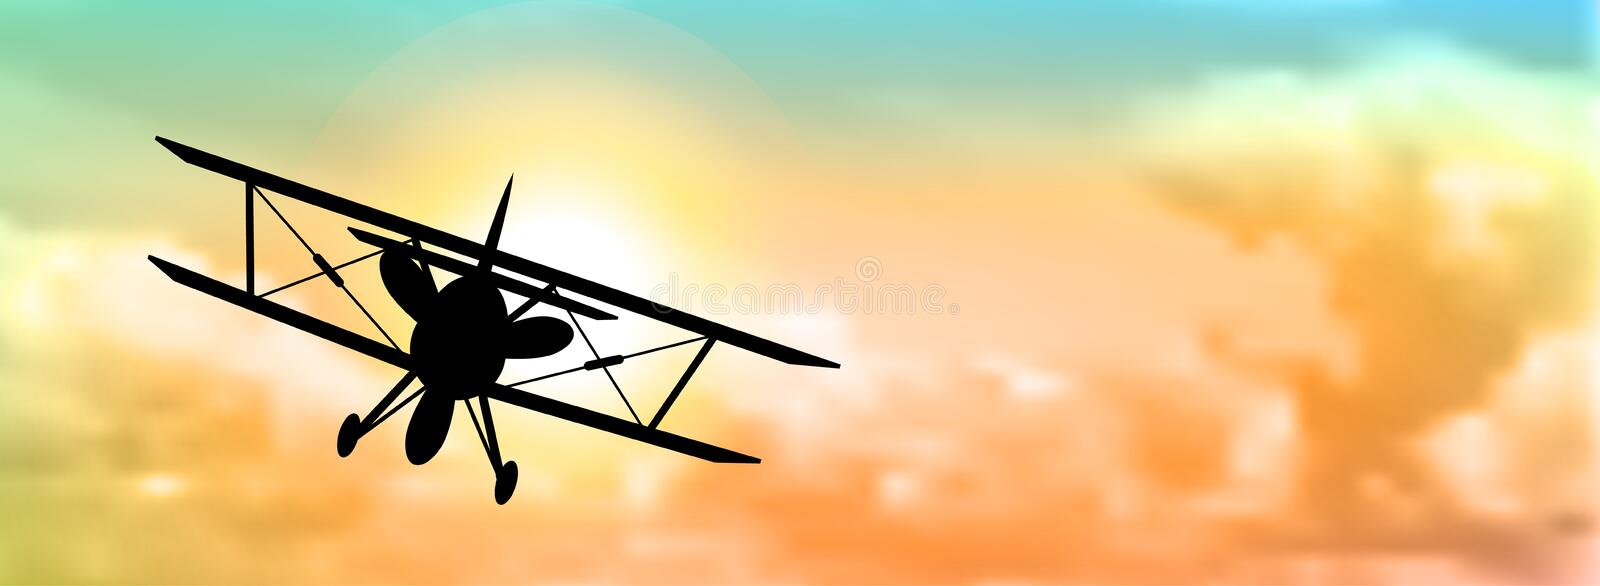 Silhouette of biplane with clouds stock illustration